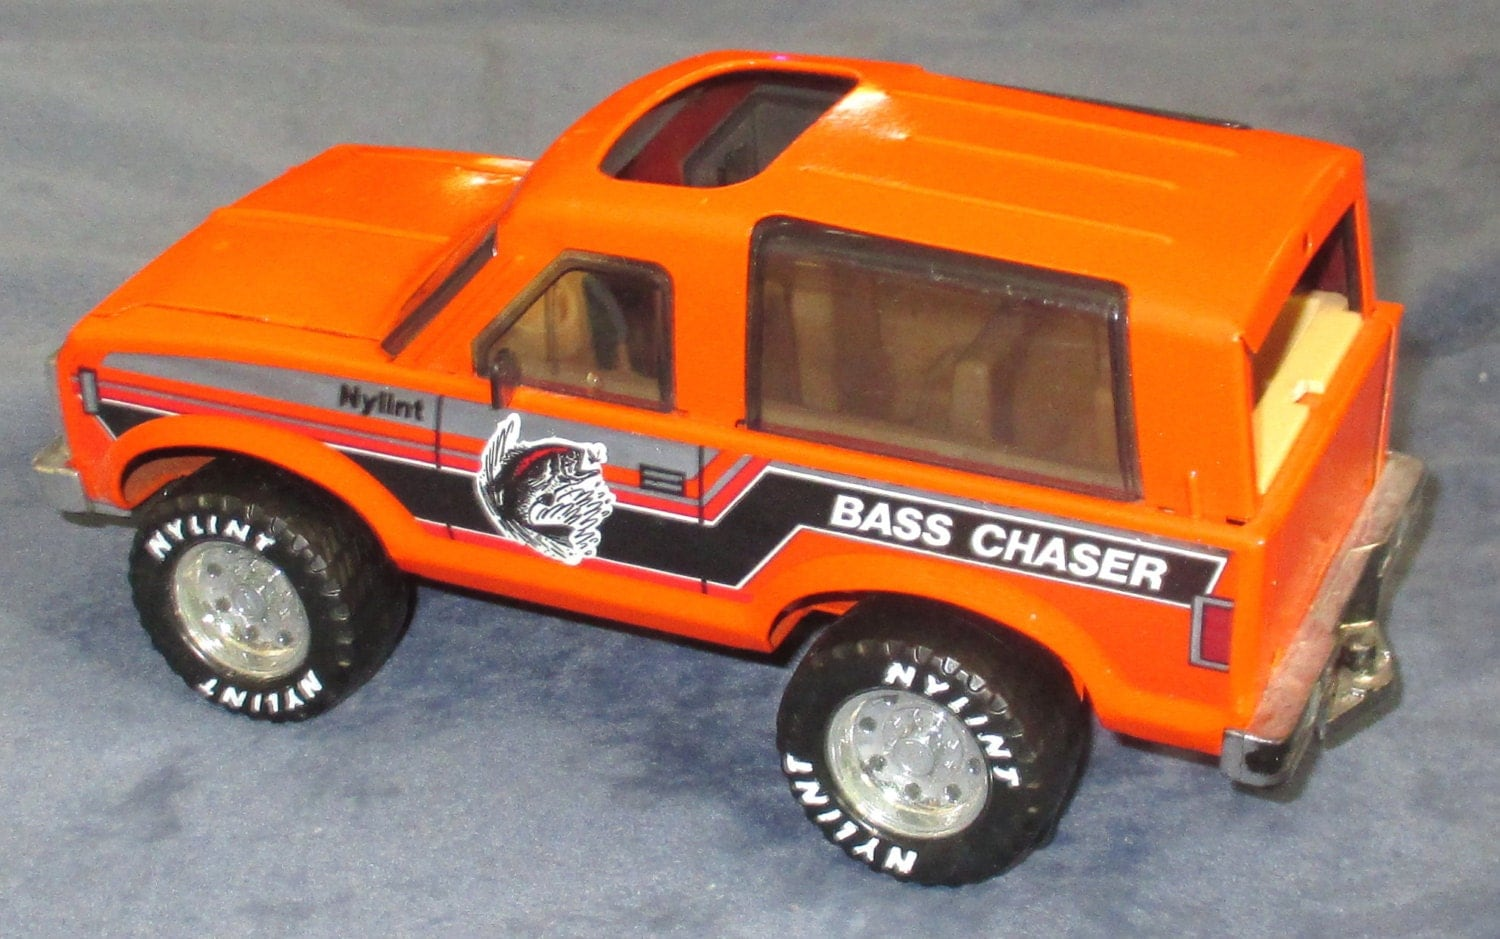 nylint toys bass chaser atv truck. Black Bedroom Furniture Sets. Home Design Ideas